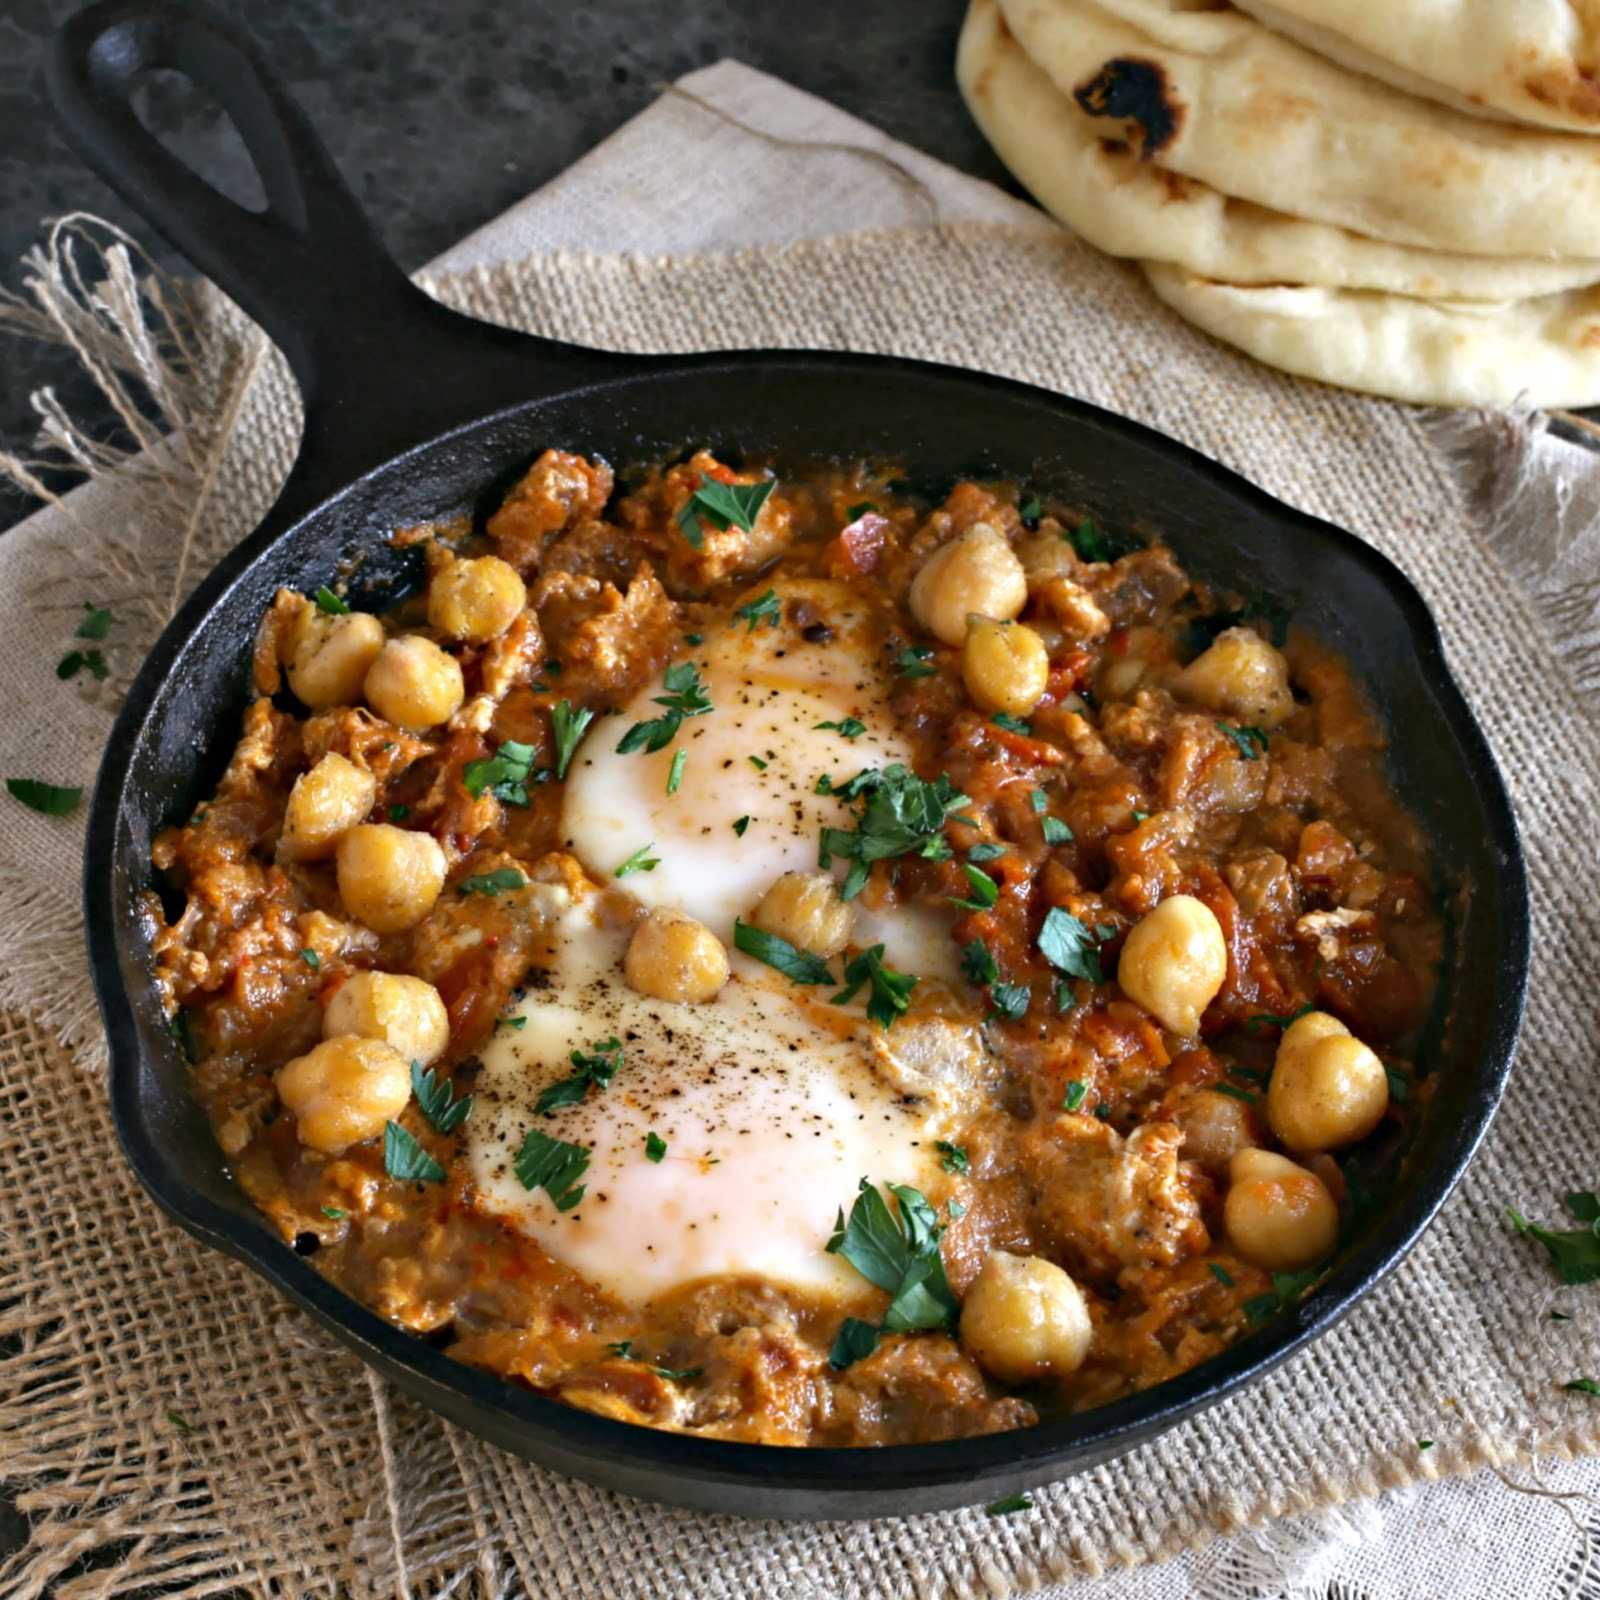 Crispy chickpeas and eggs poached in a shakshuka simmer sauce.